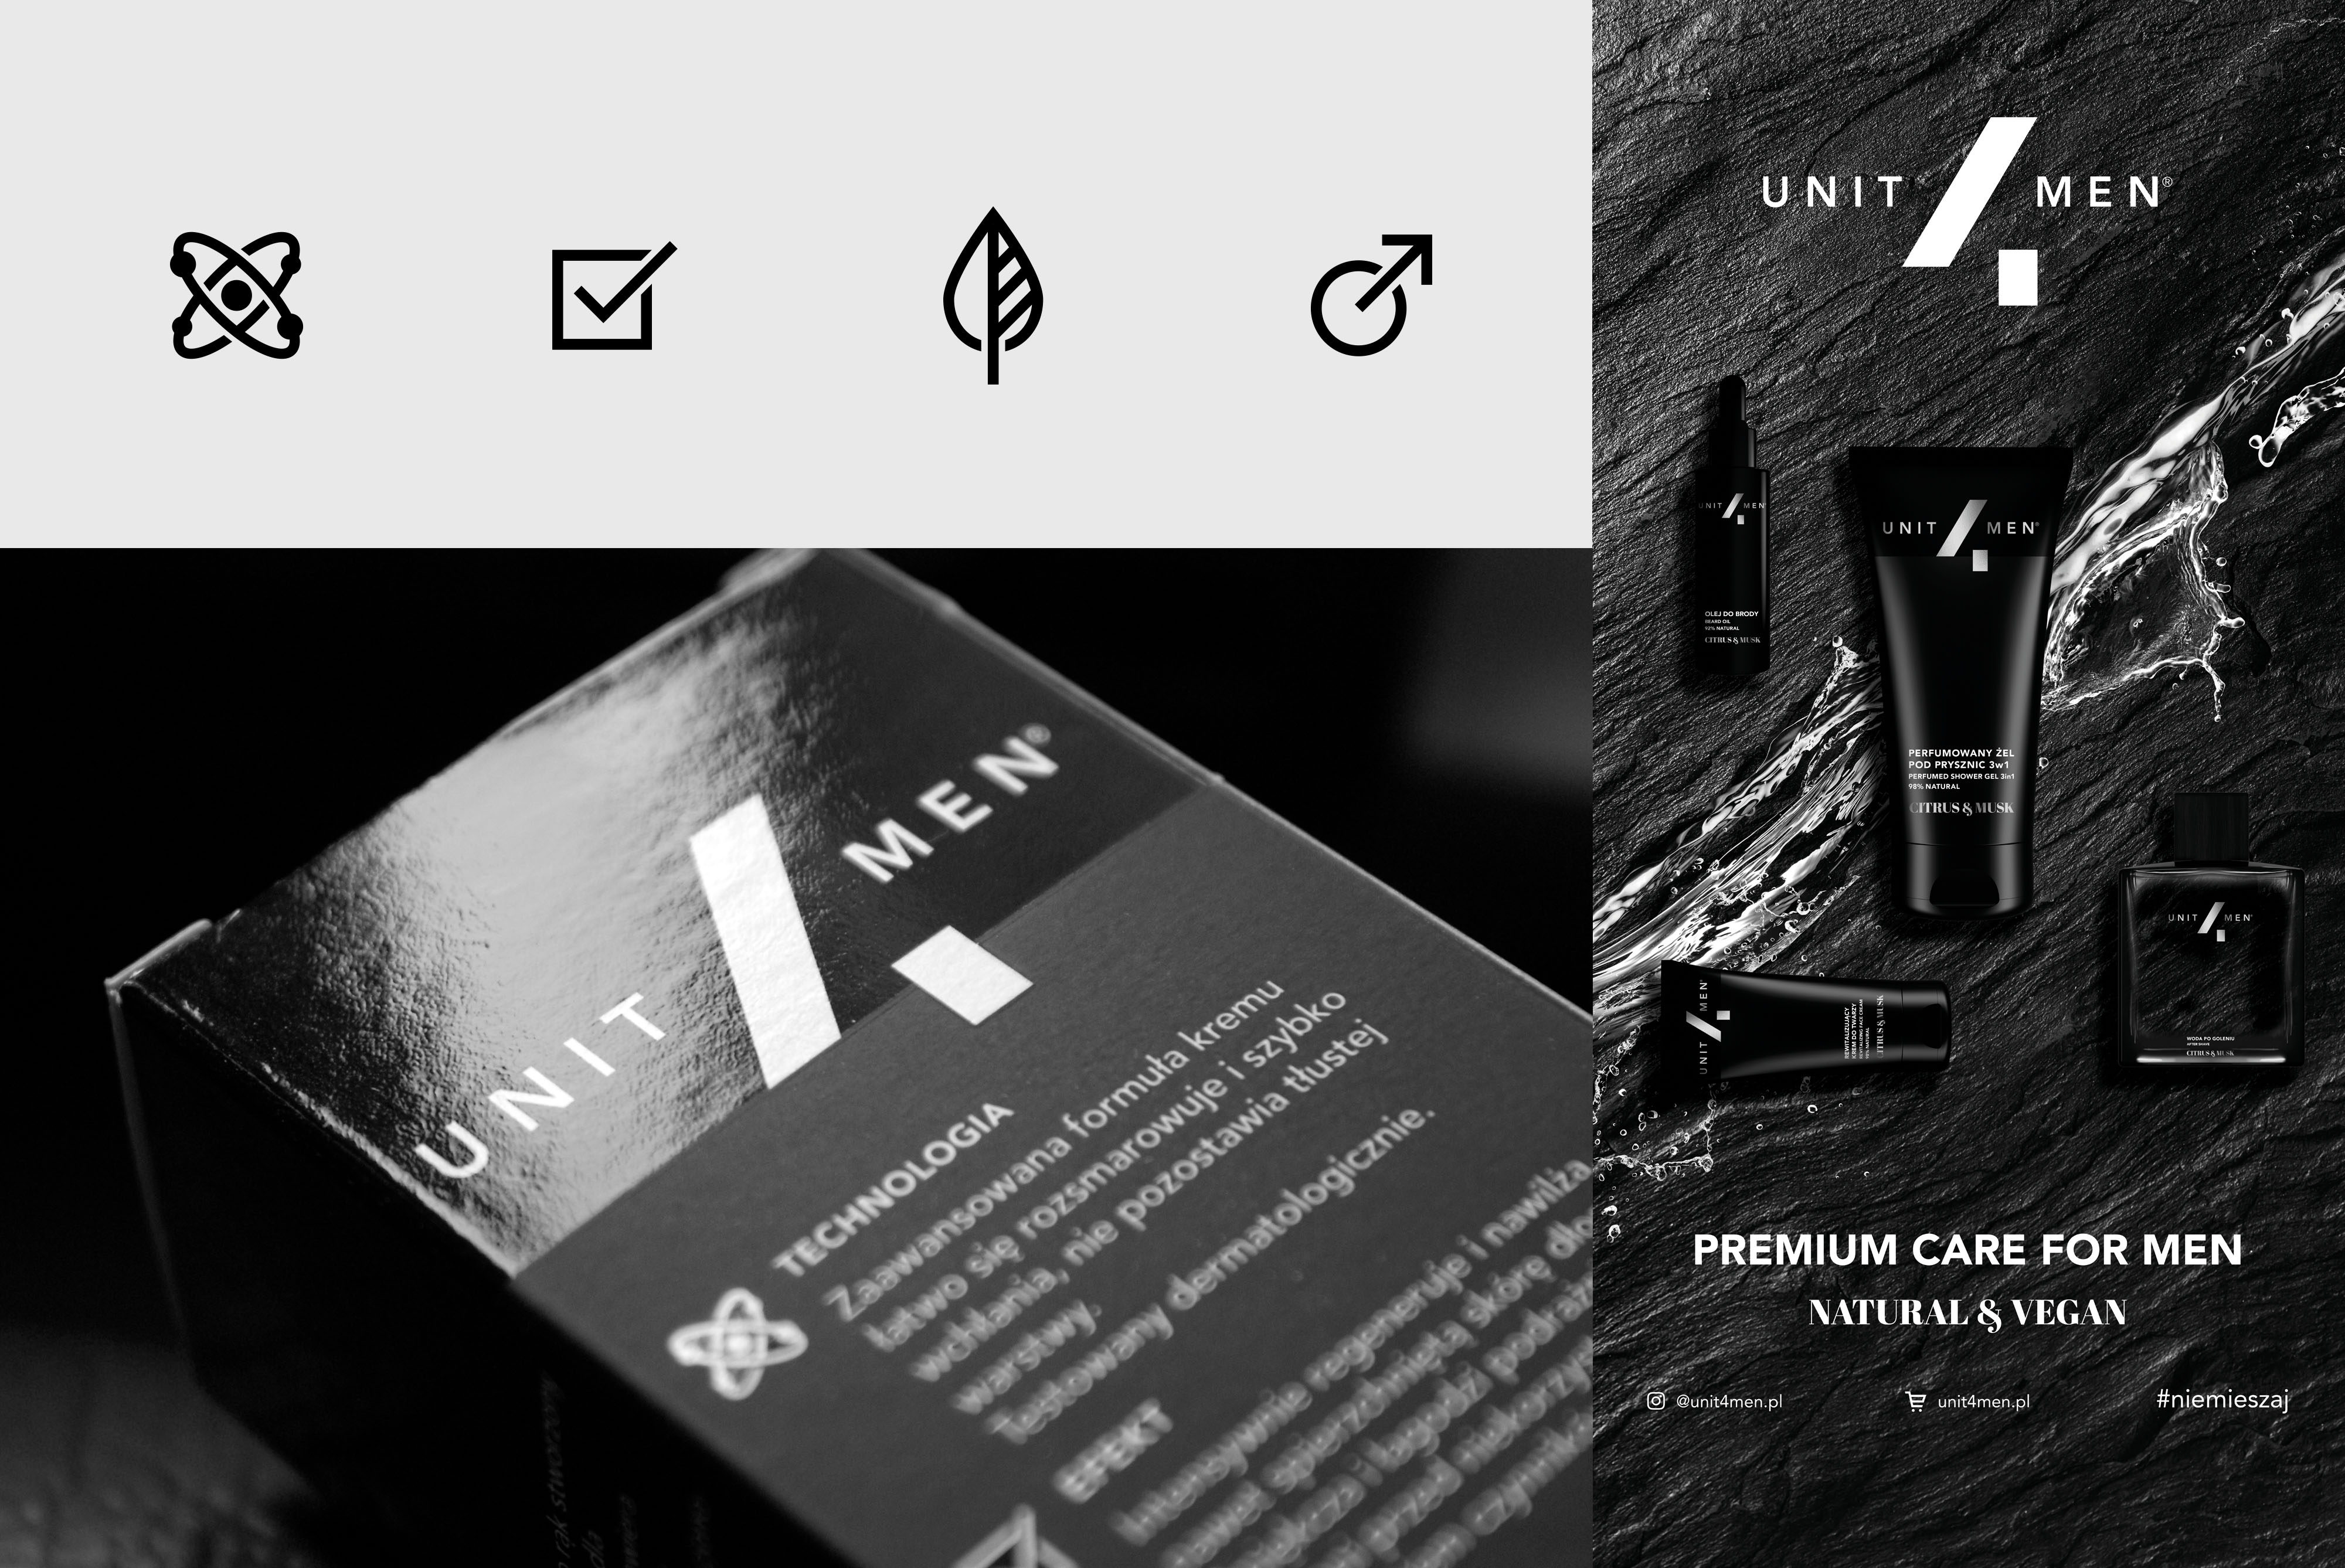 UNIT4MEN Branding and Packaging for Men's Premium Cosmetics